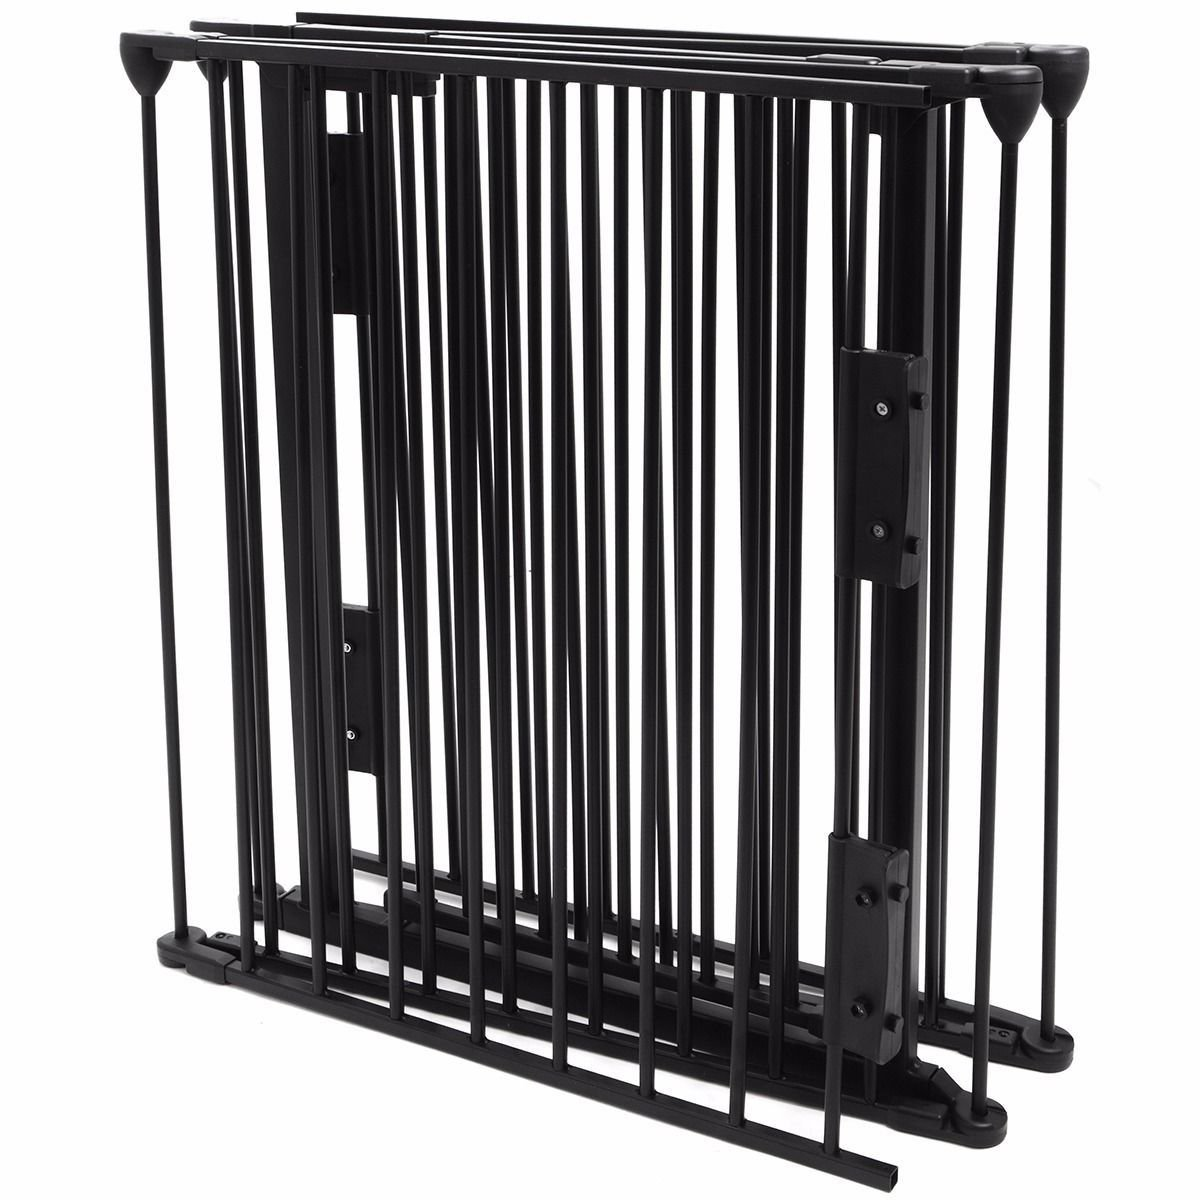 (US Stock) Fireplace Fence Baby Safety Pet Gate Dog Barrier Enclose Indoor Home, 25''x30'', Black by Eminentshop